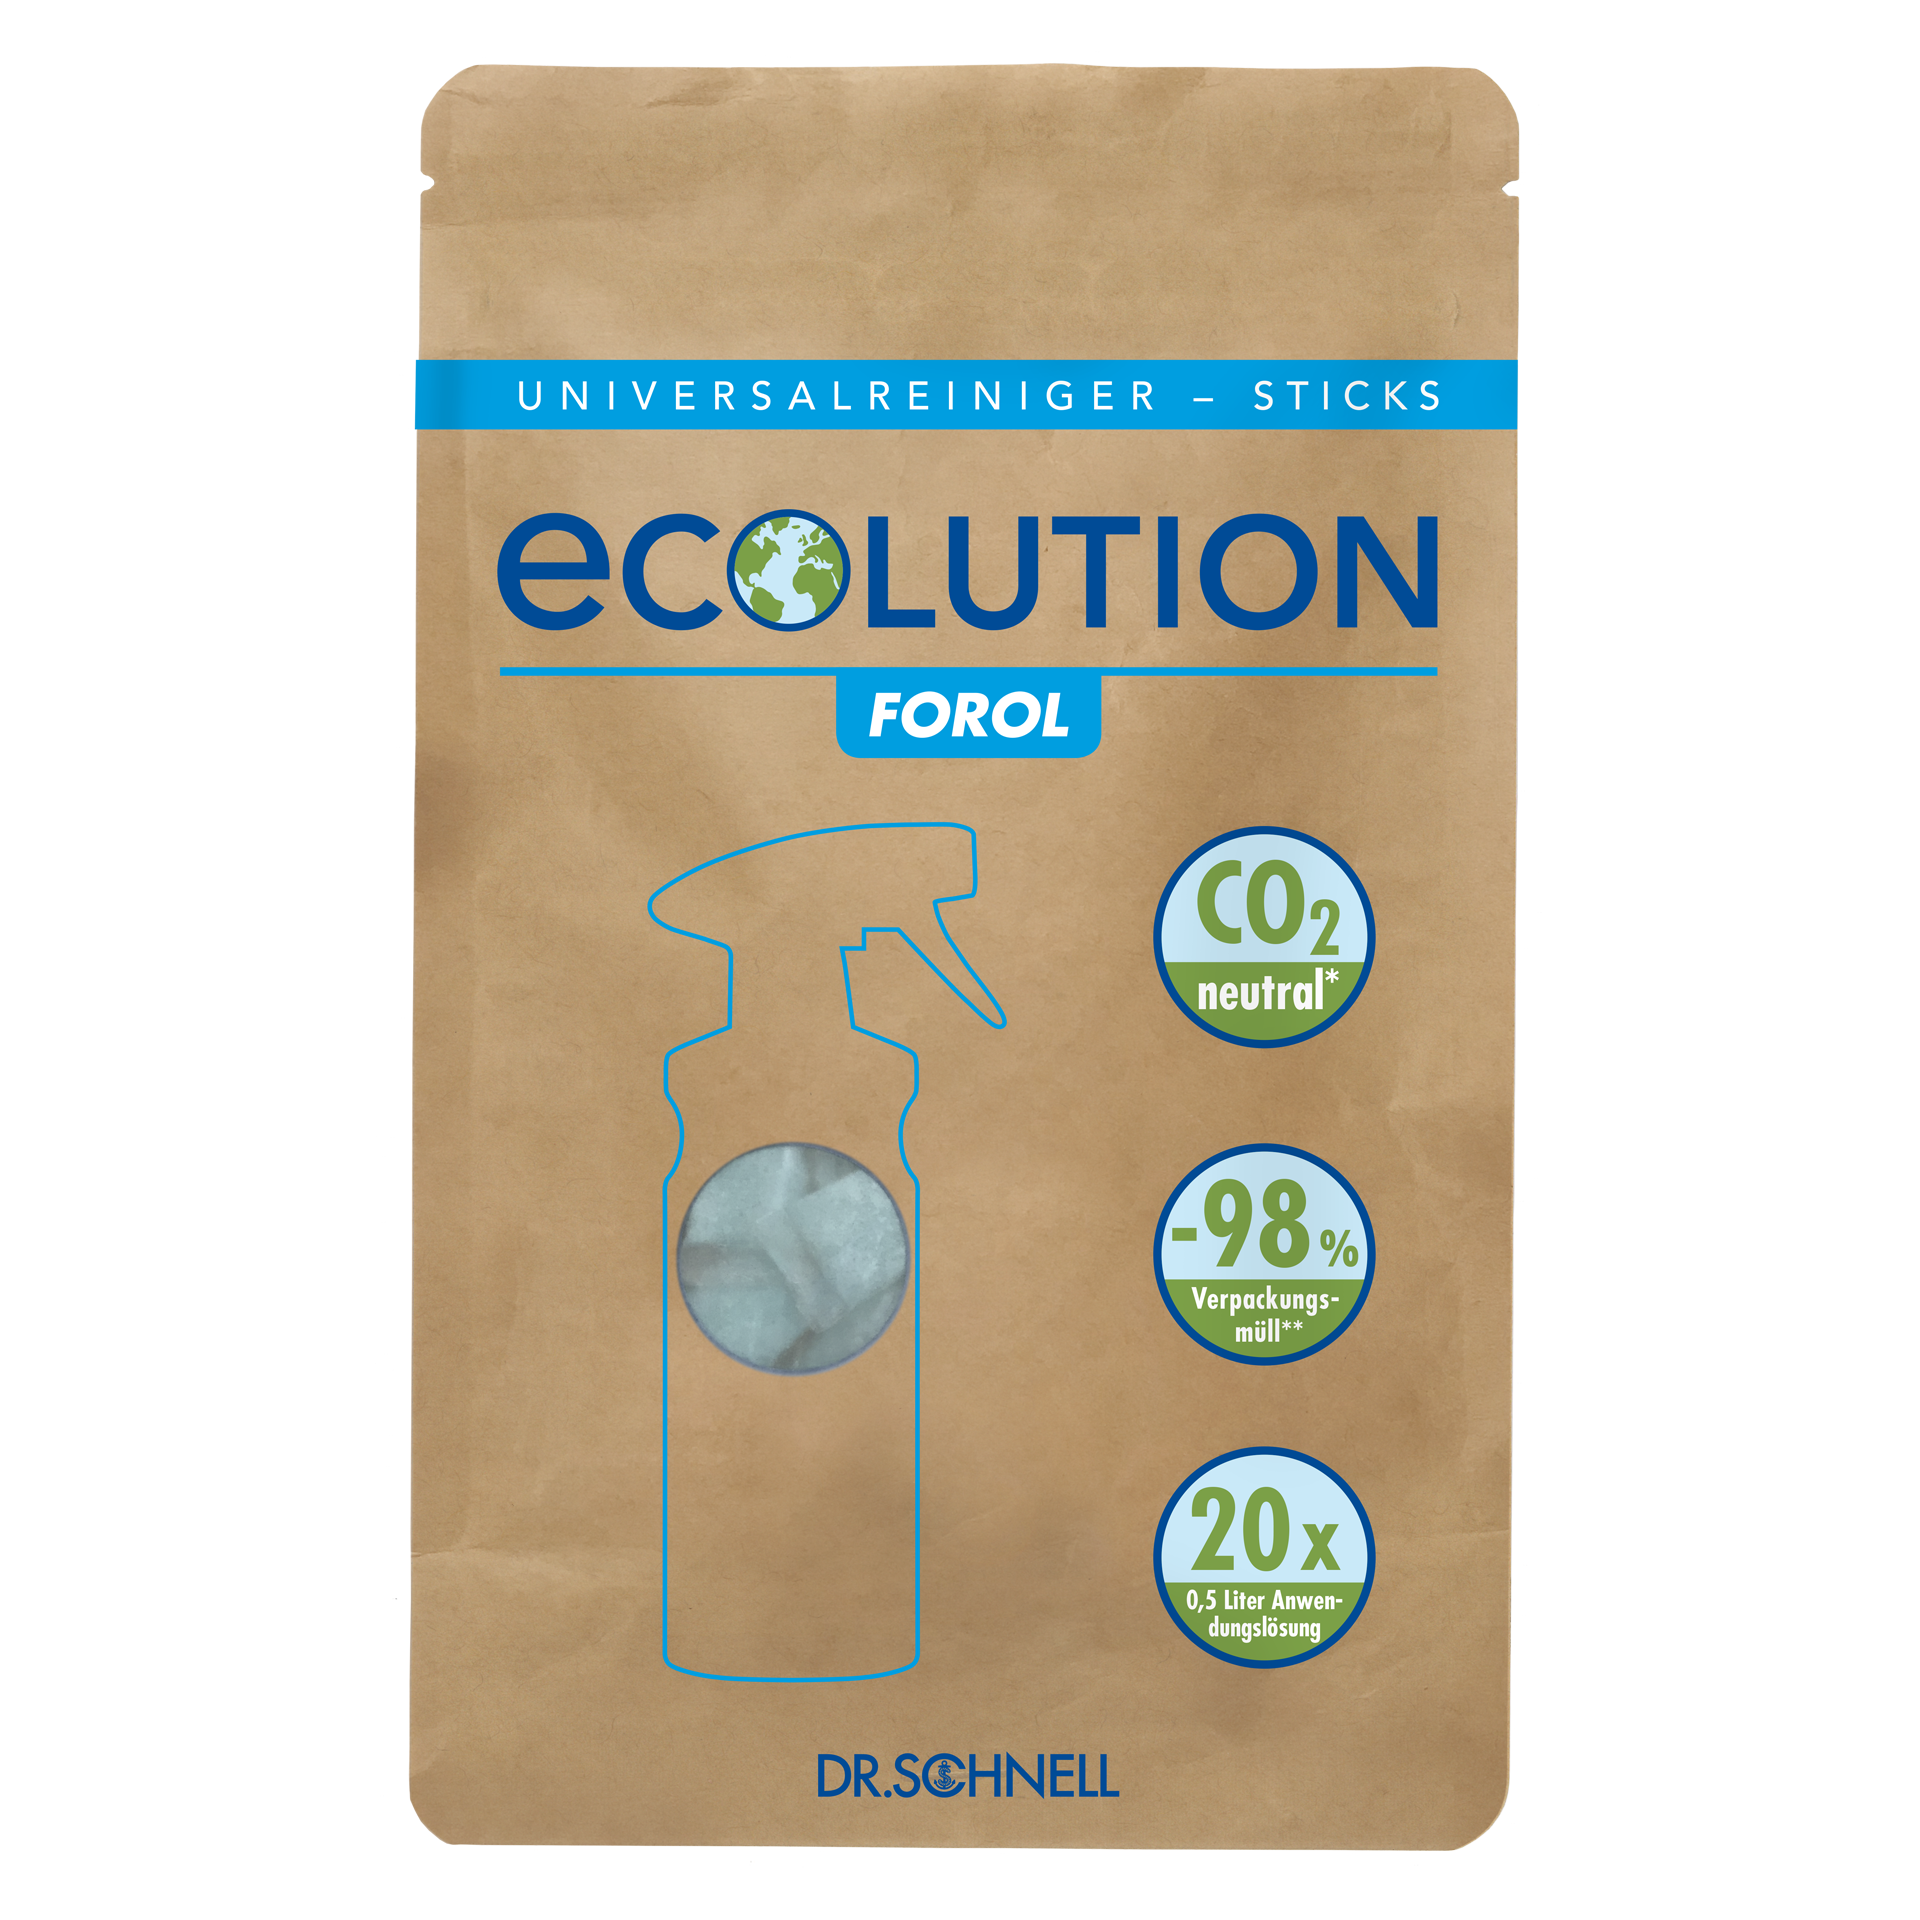 ECOLUTION FOROL STICKS